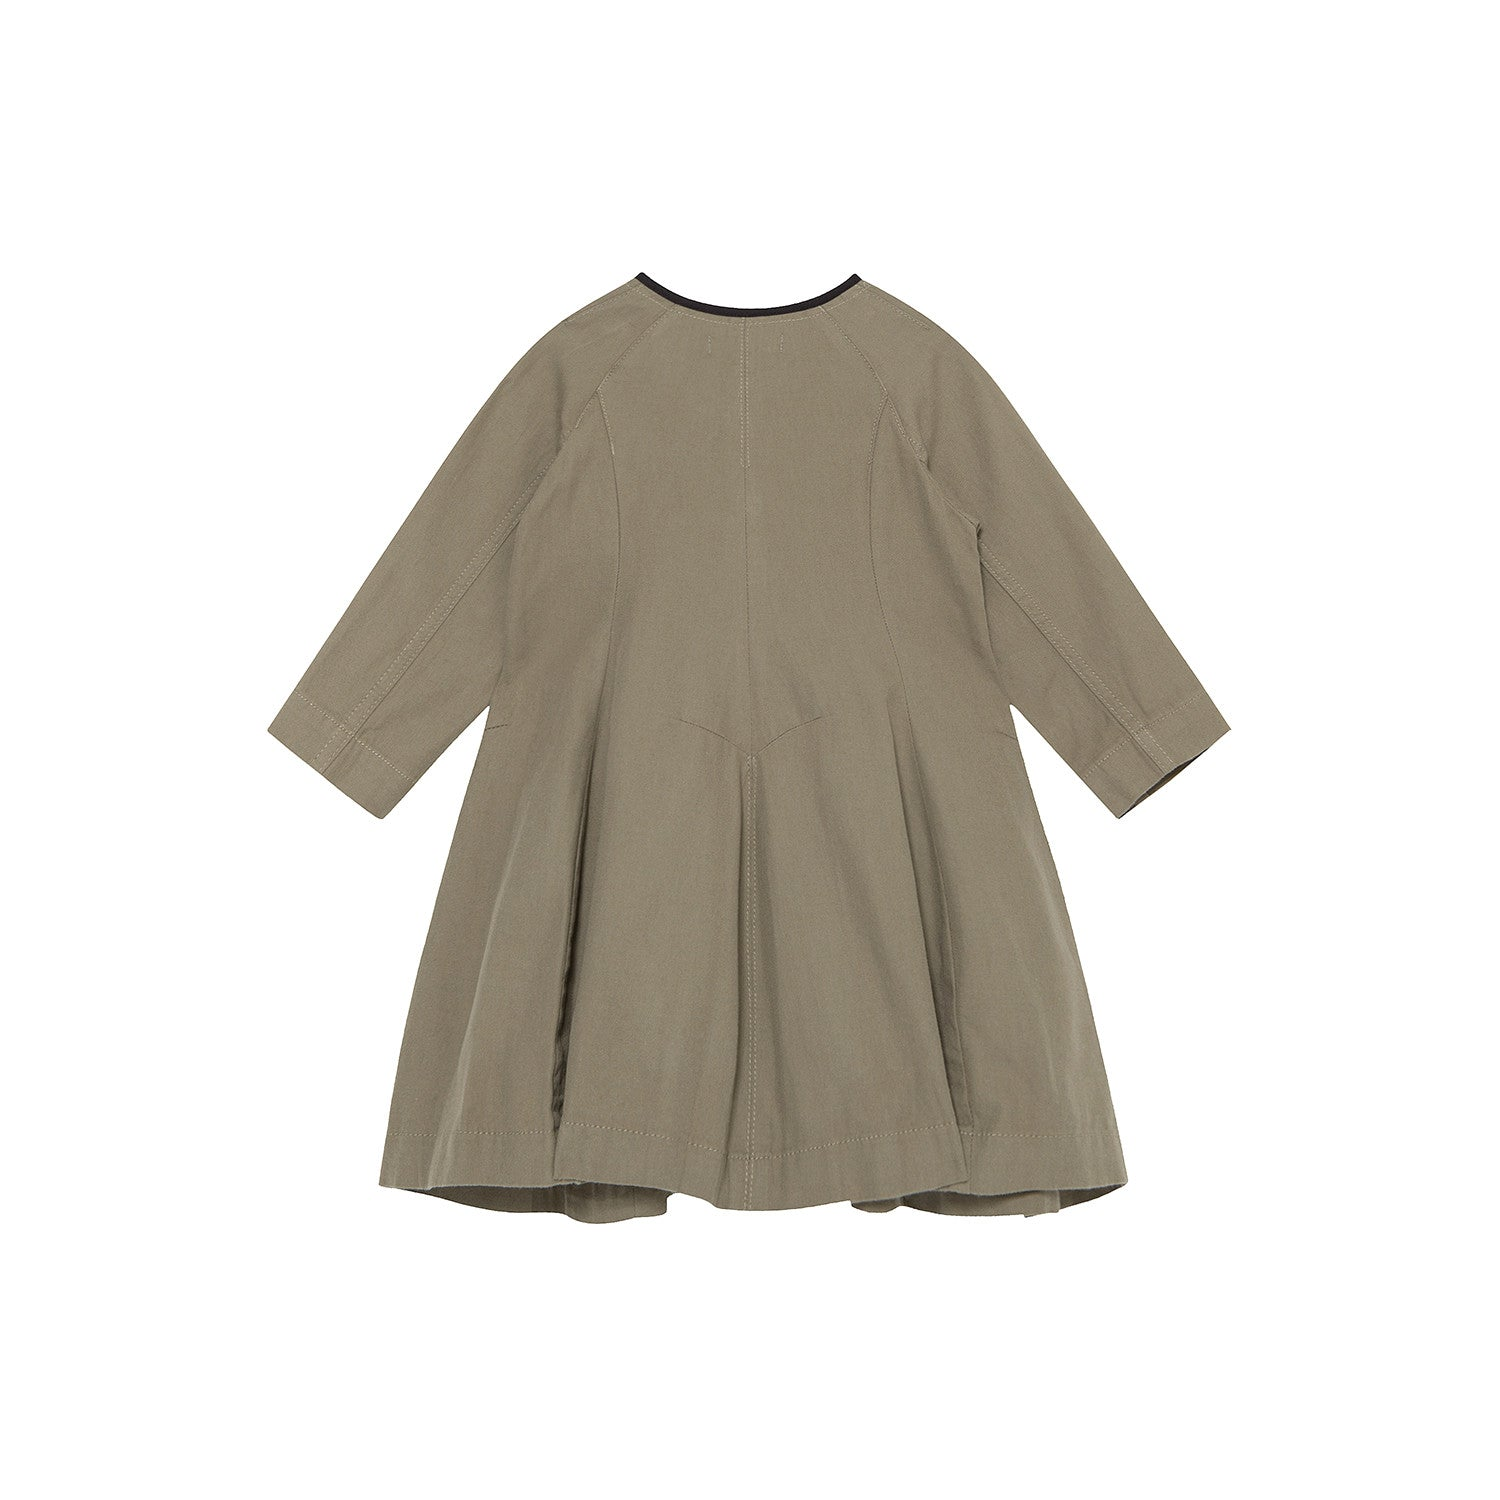 Bene Bene Khaki Dart Dress - Ladida